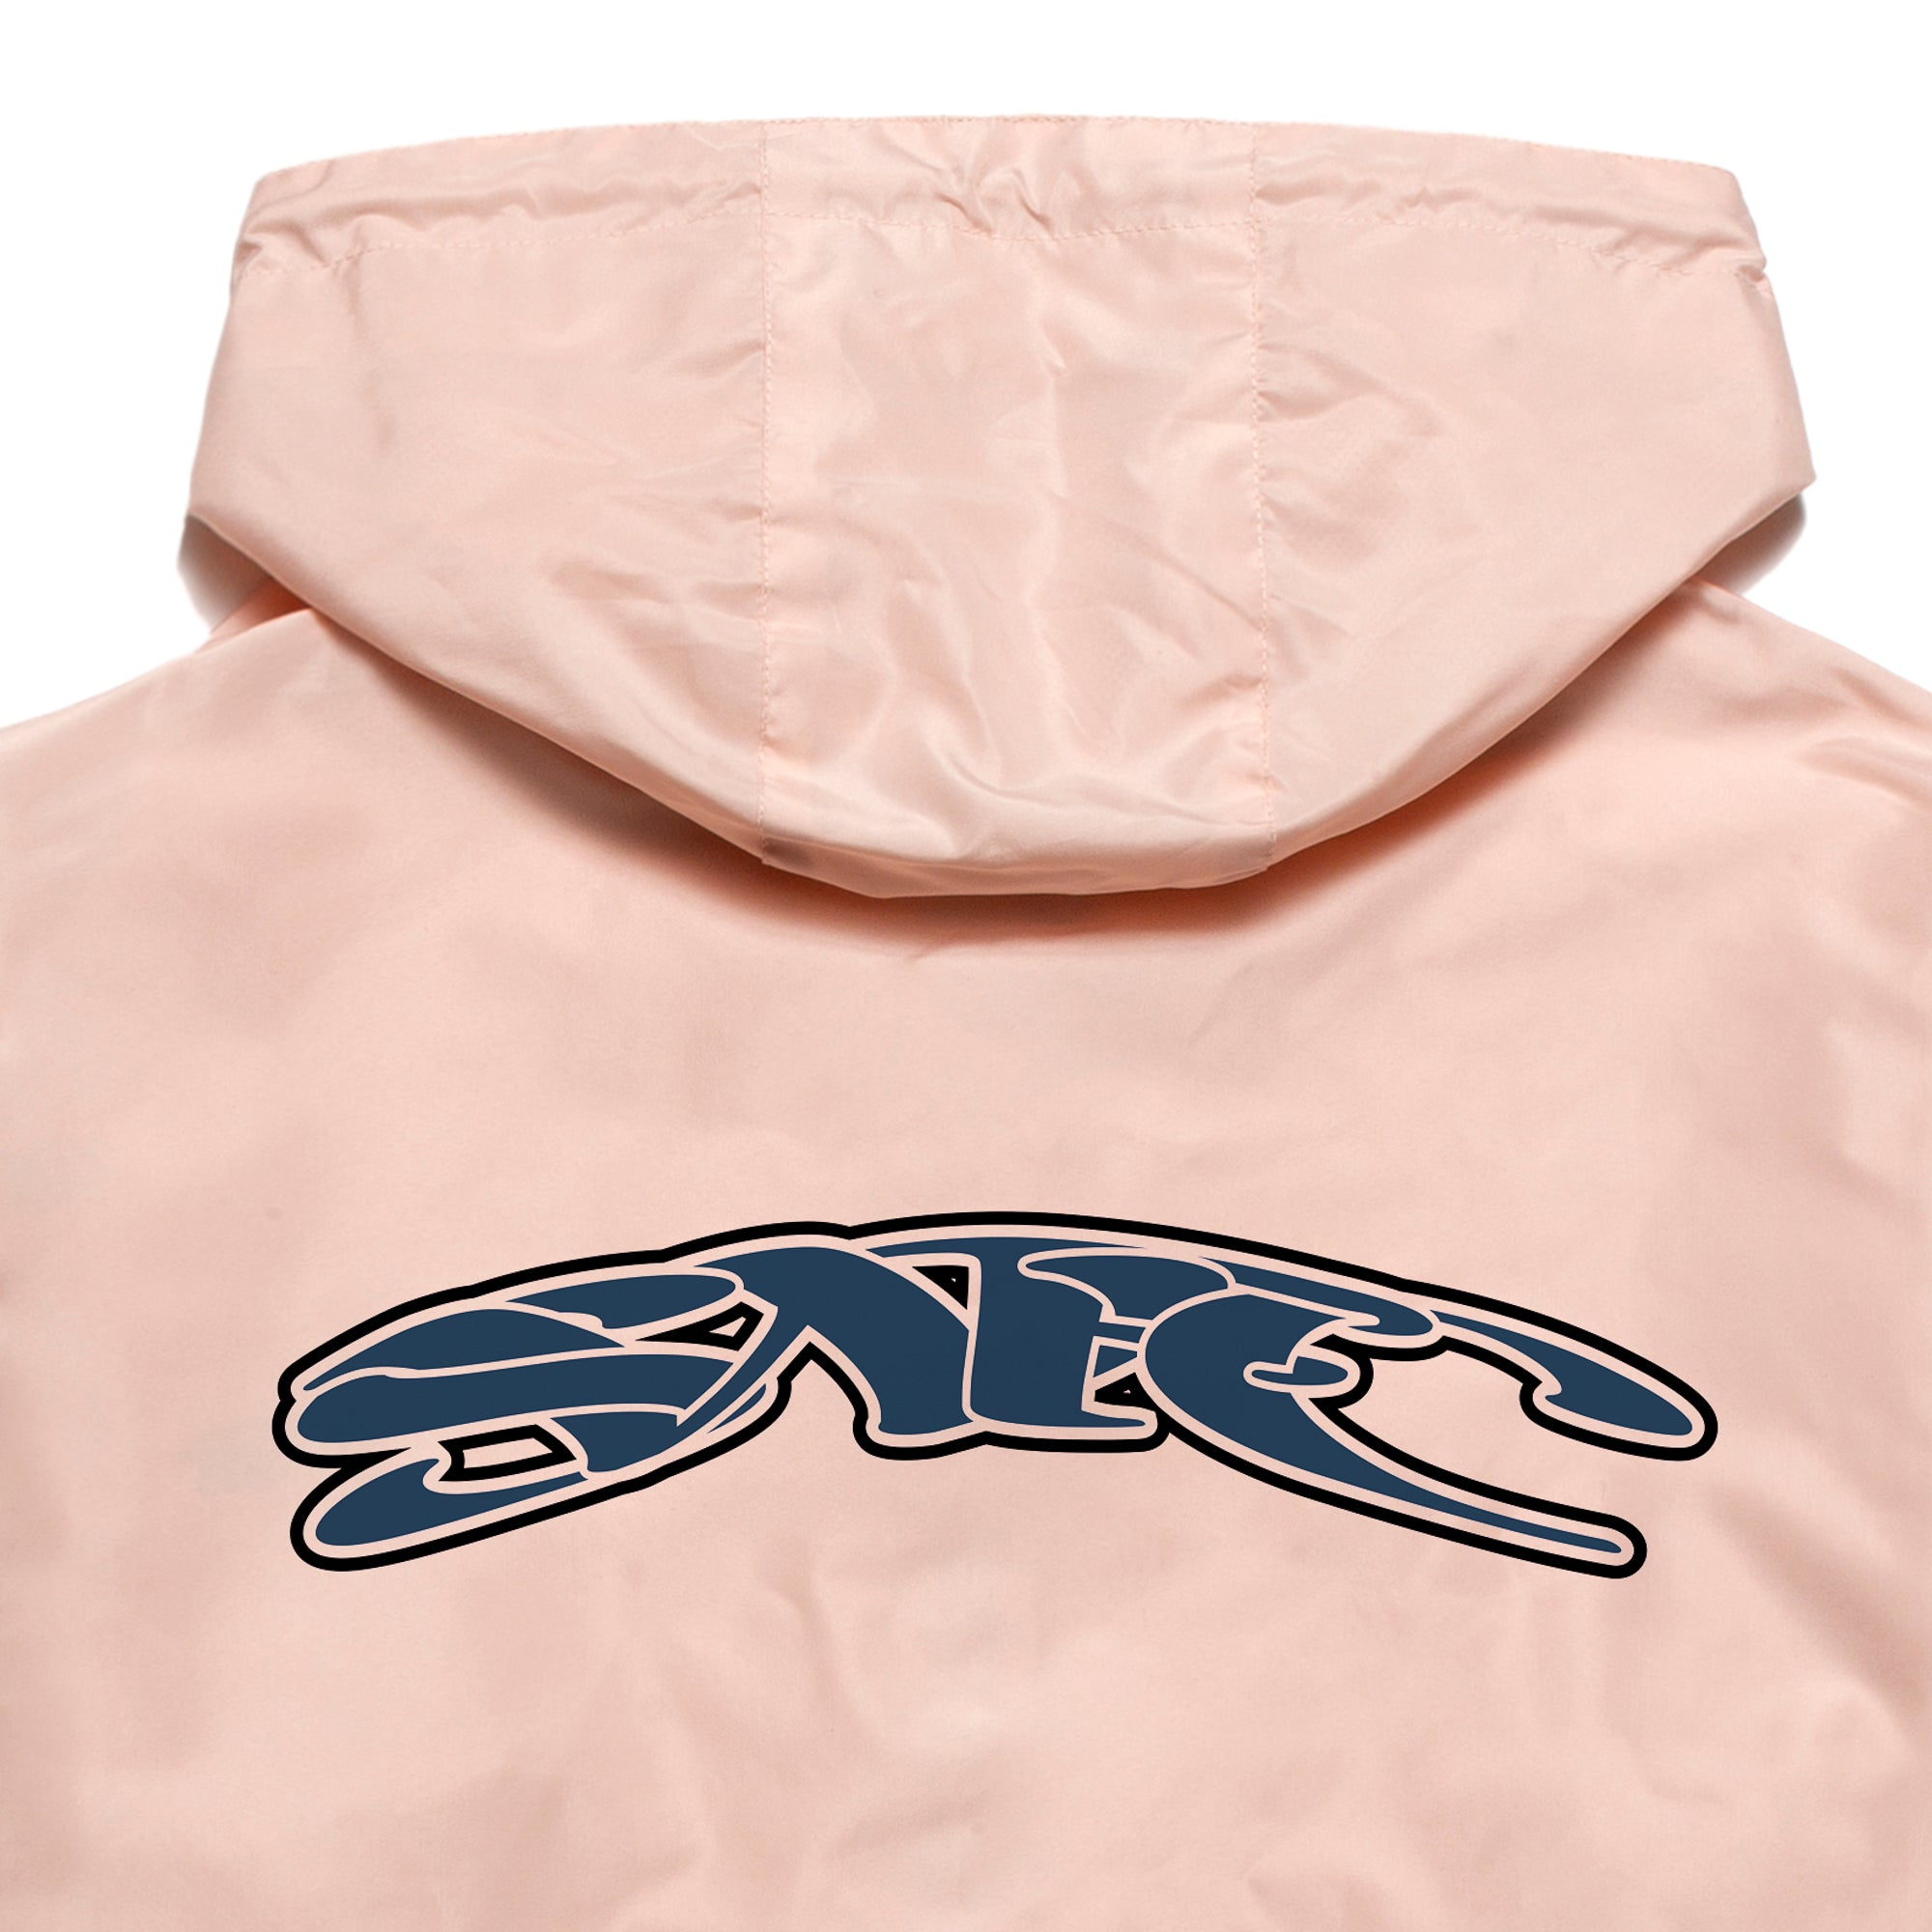 Load image into Gallery viewer, SWFC Twisted Logo Anorak Jacket / Home Color